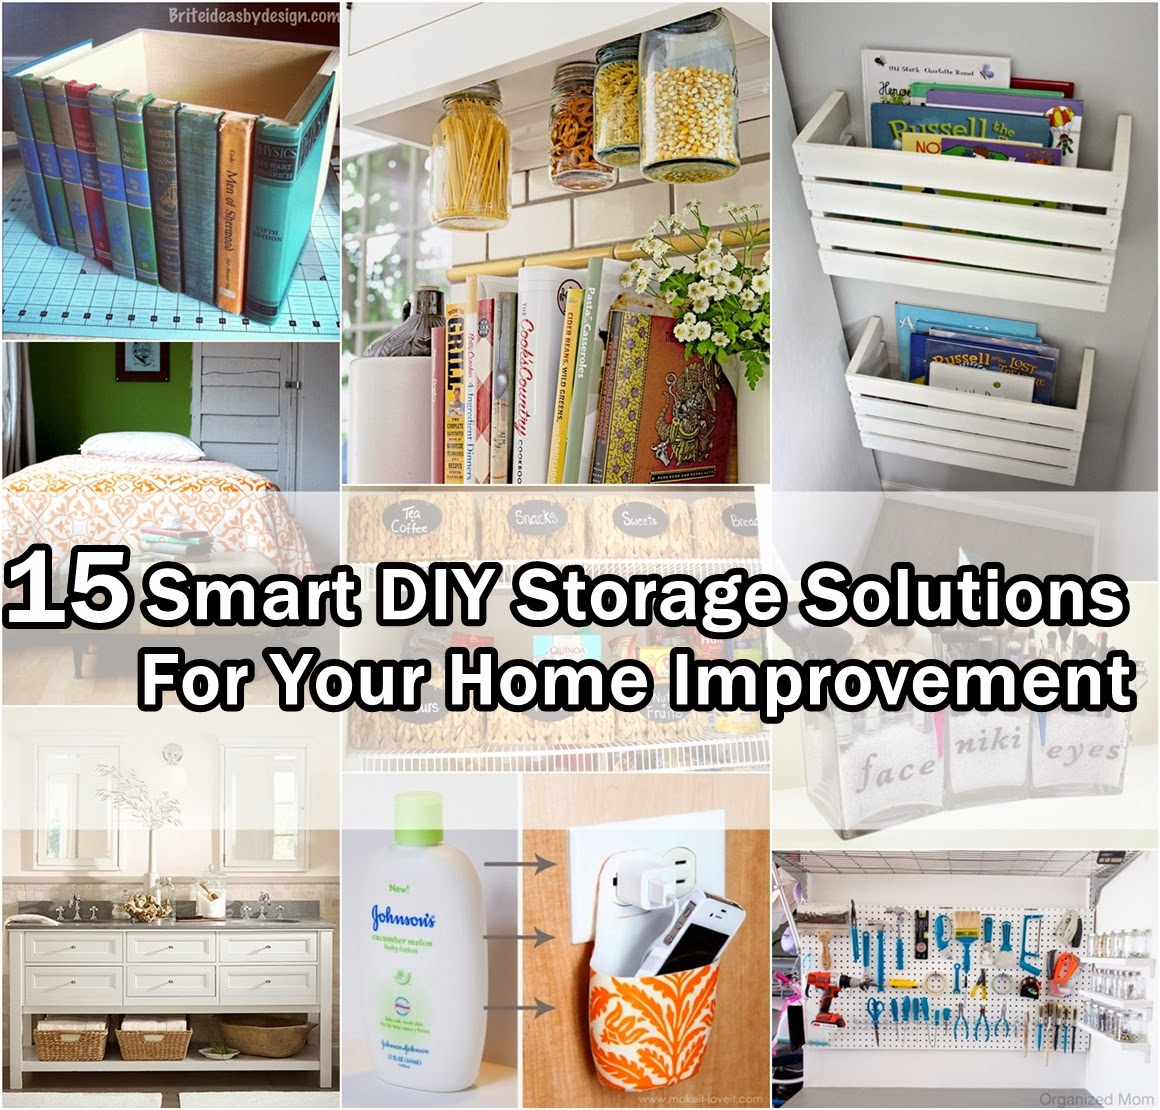 15 Super Smart DIY Storage Solutions For Your Home Improvement